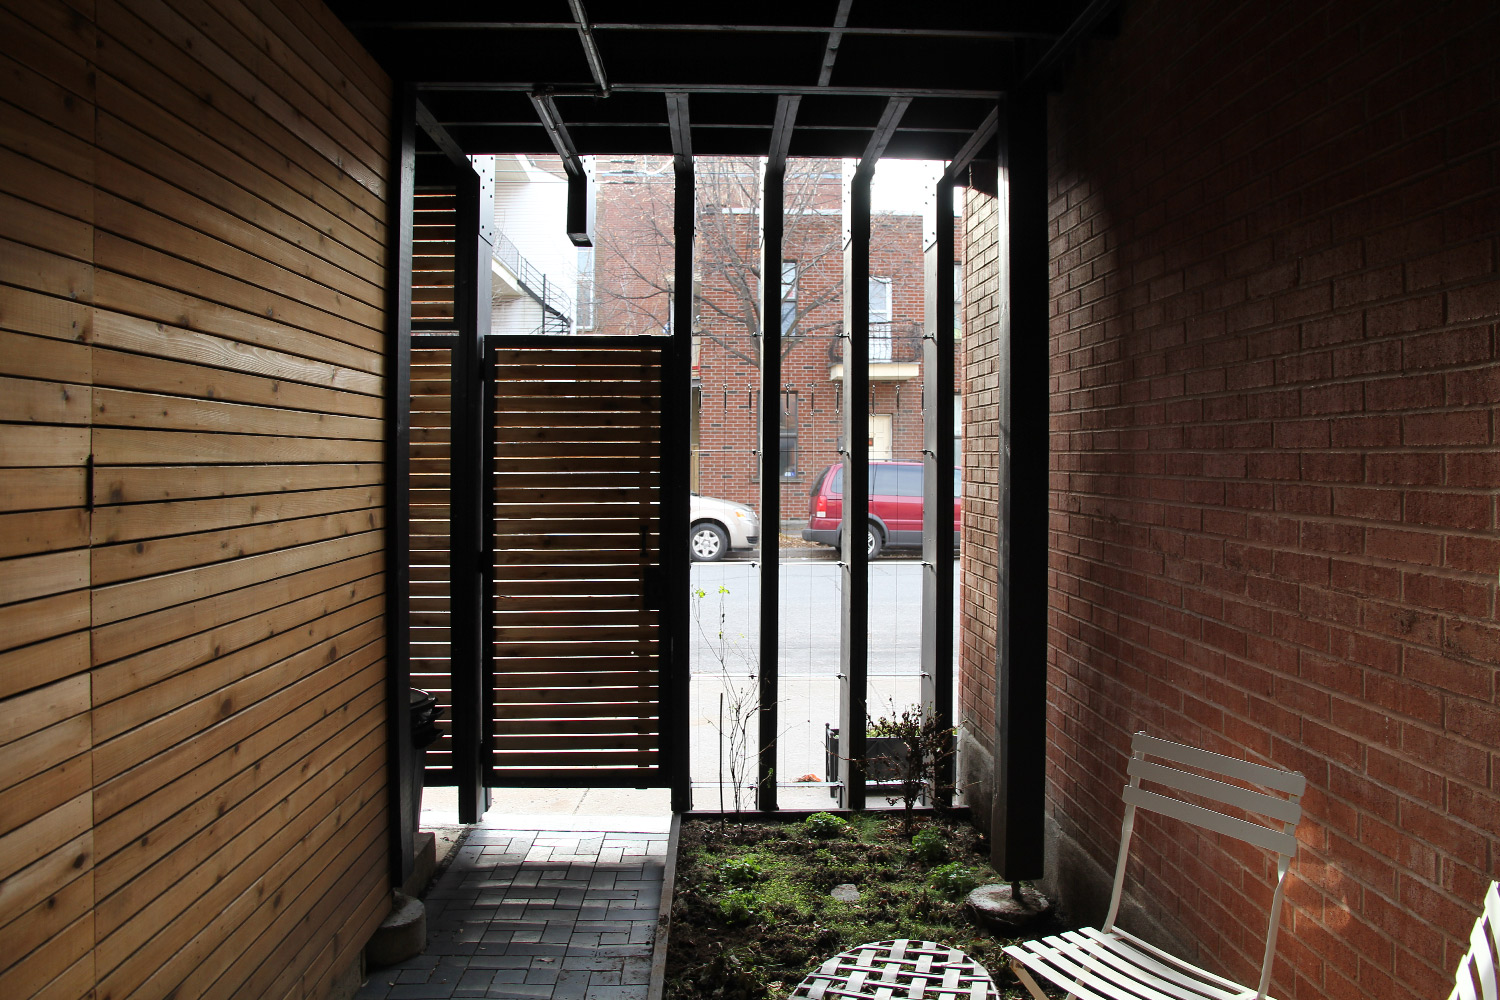 Small interior courtyard under the wooden deck. Wooden walls and red brick wall